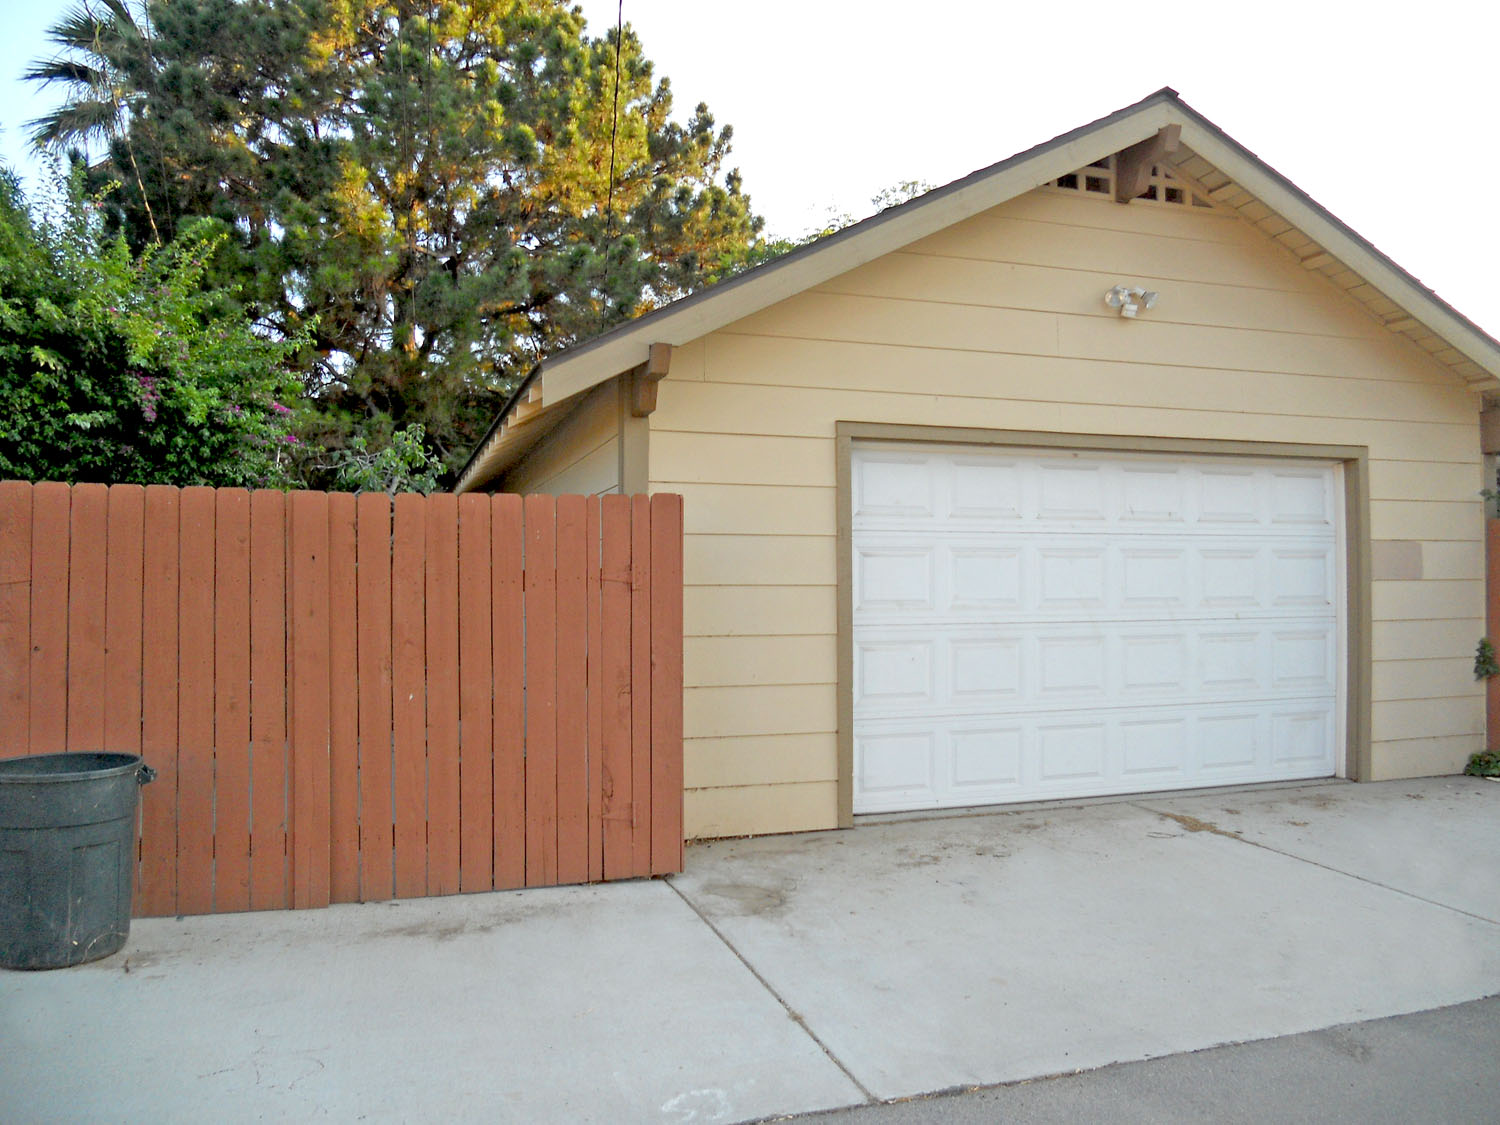 Wonderful View Of 2 Car Garage From Paved Alley.